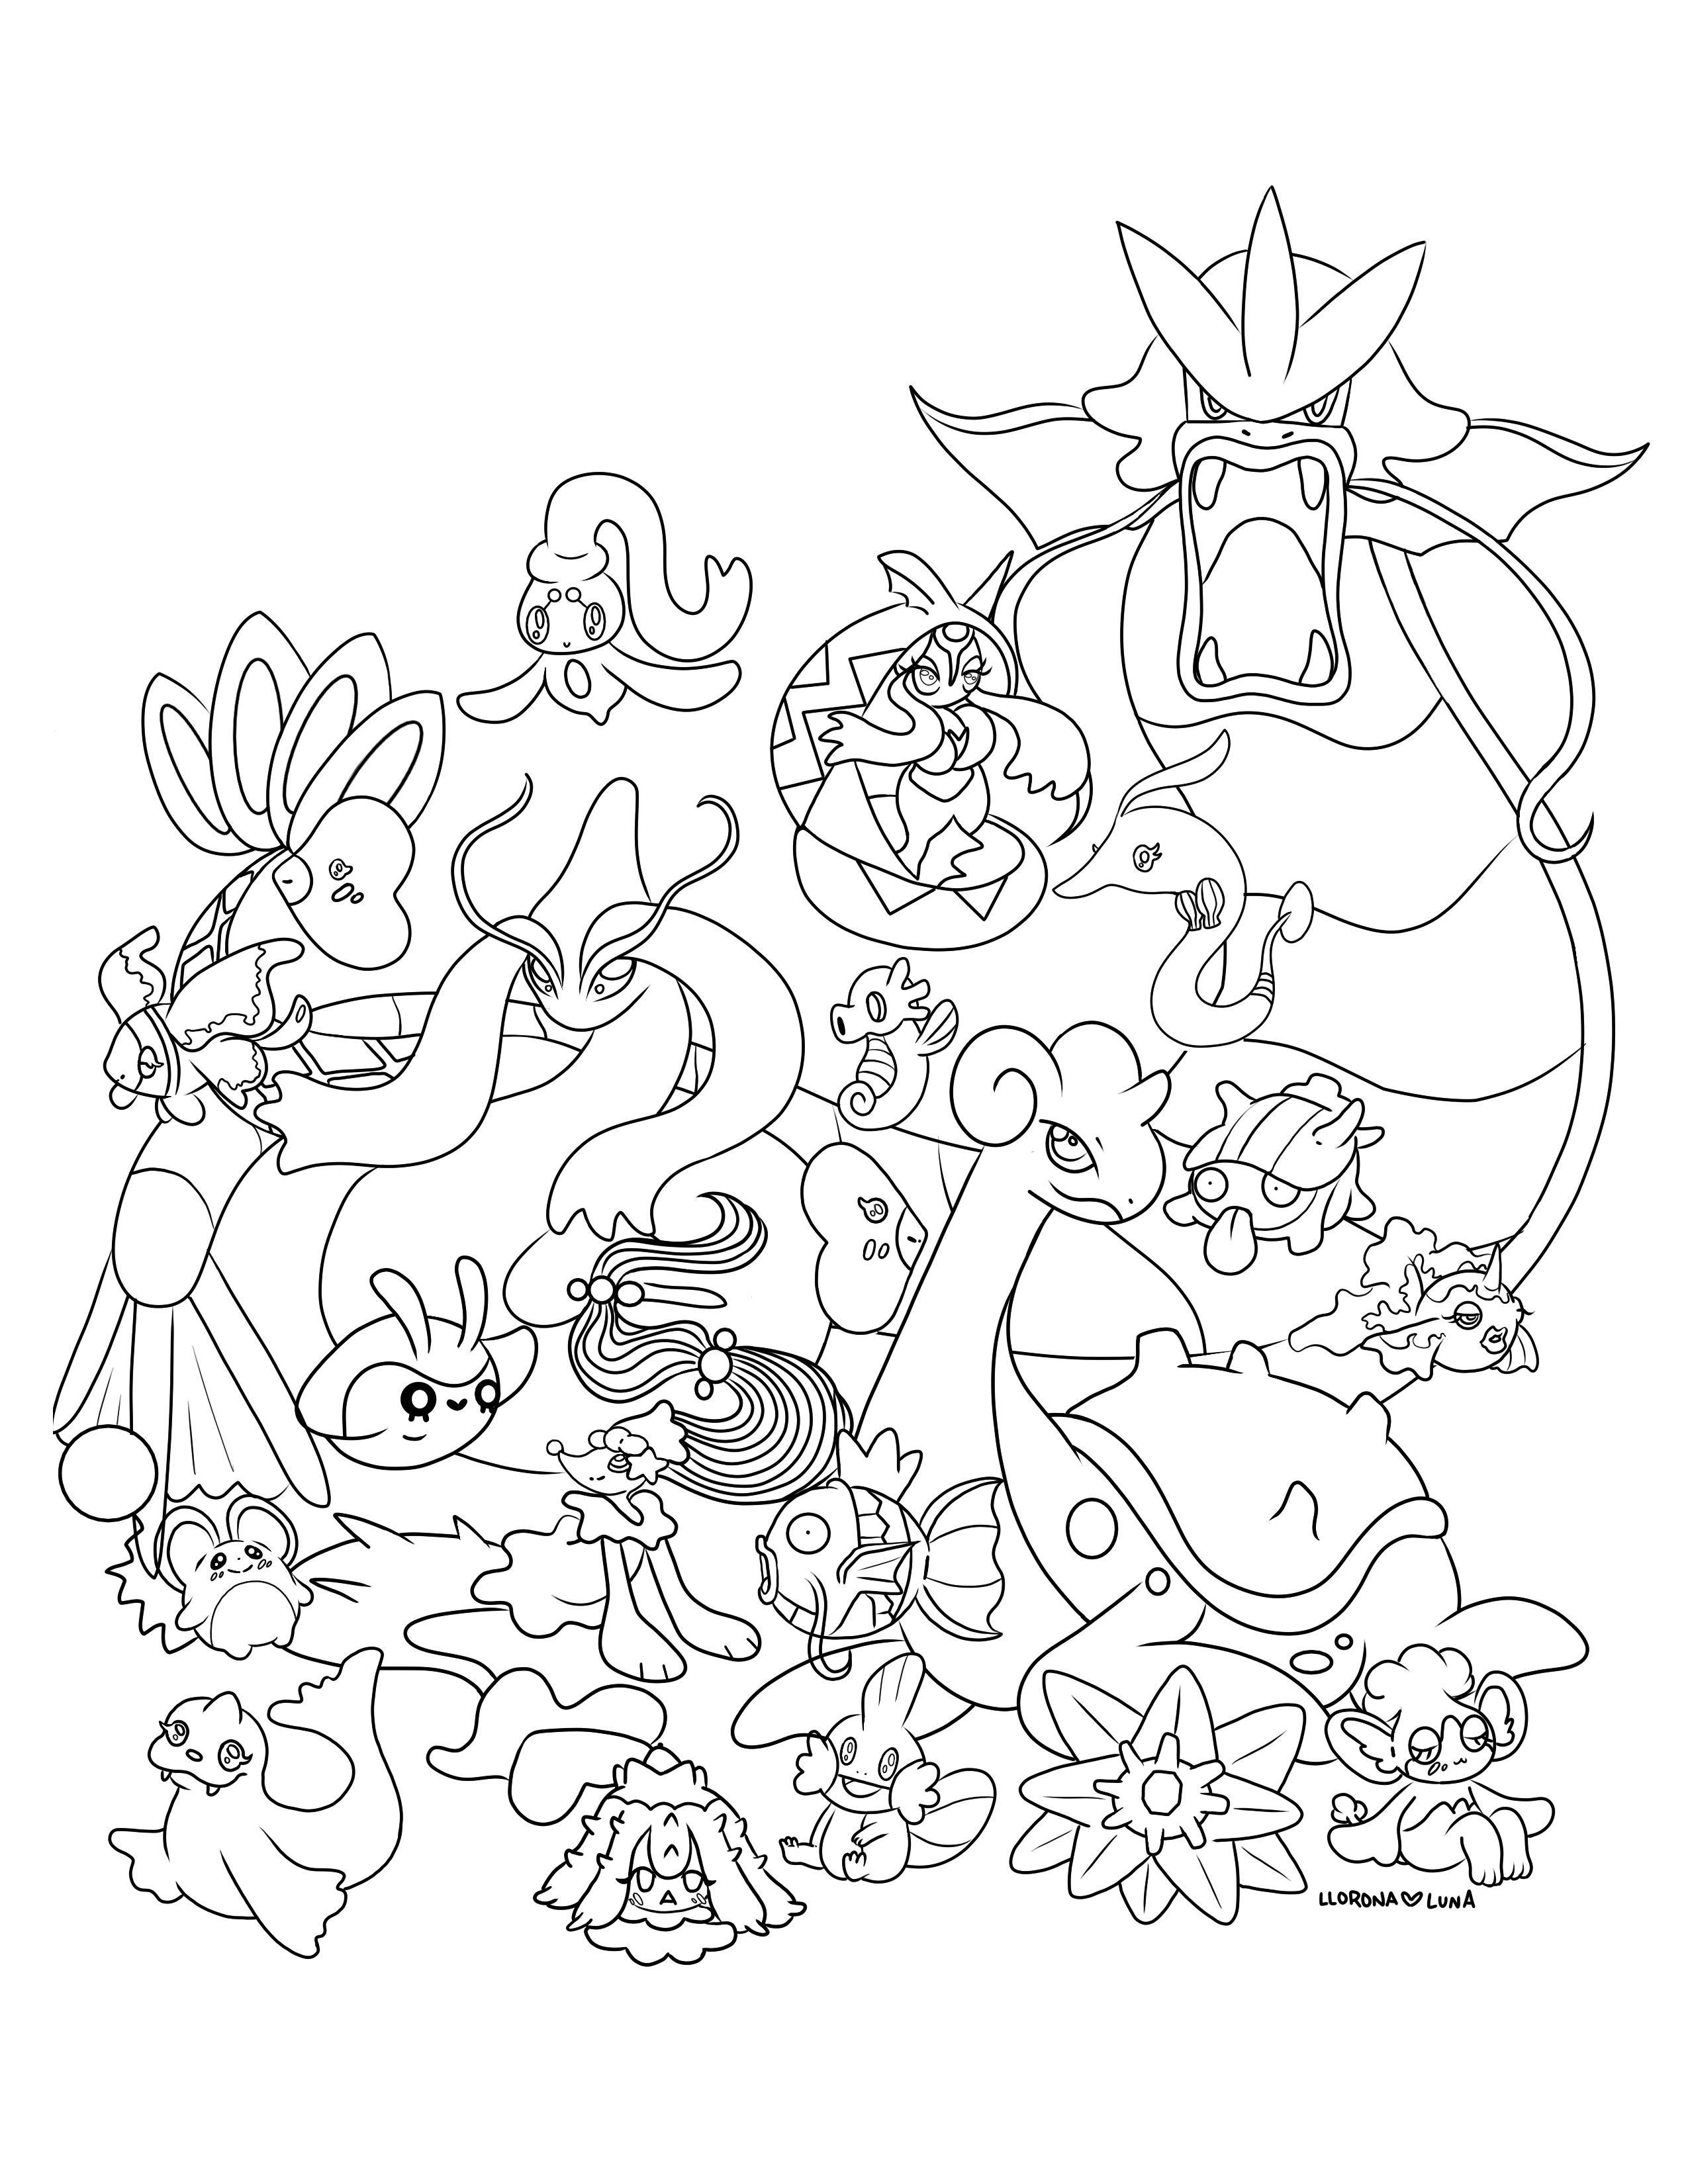 Water Pokemon Coloring Pages : water, pokemon, coloring, pages, Really, Proud, Coloring, 🥺💕, Please, Print, Color, Fellow, Water, Fans!, Everyone, Doing, Quarantine